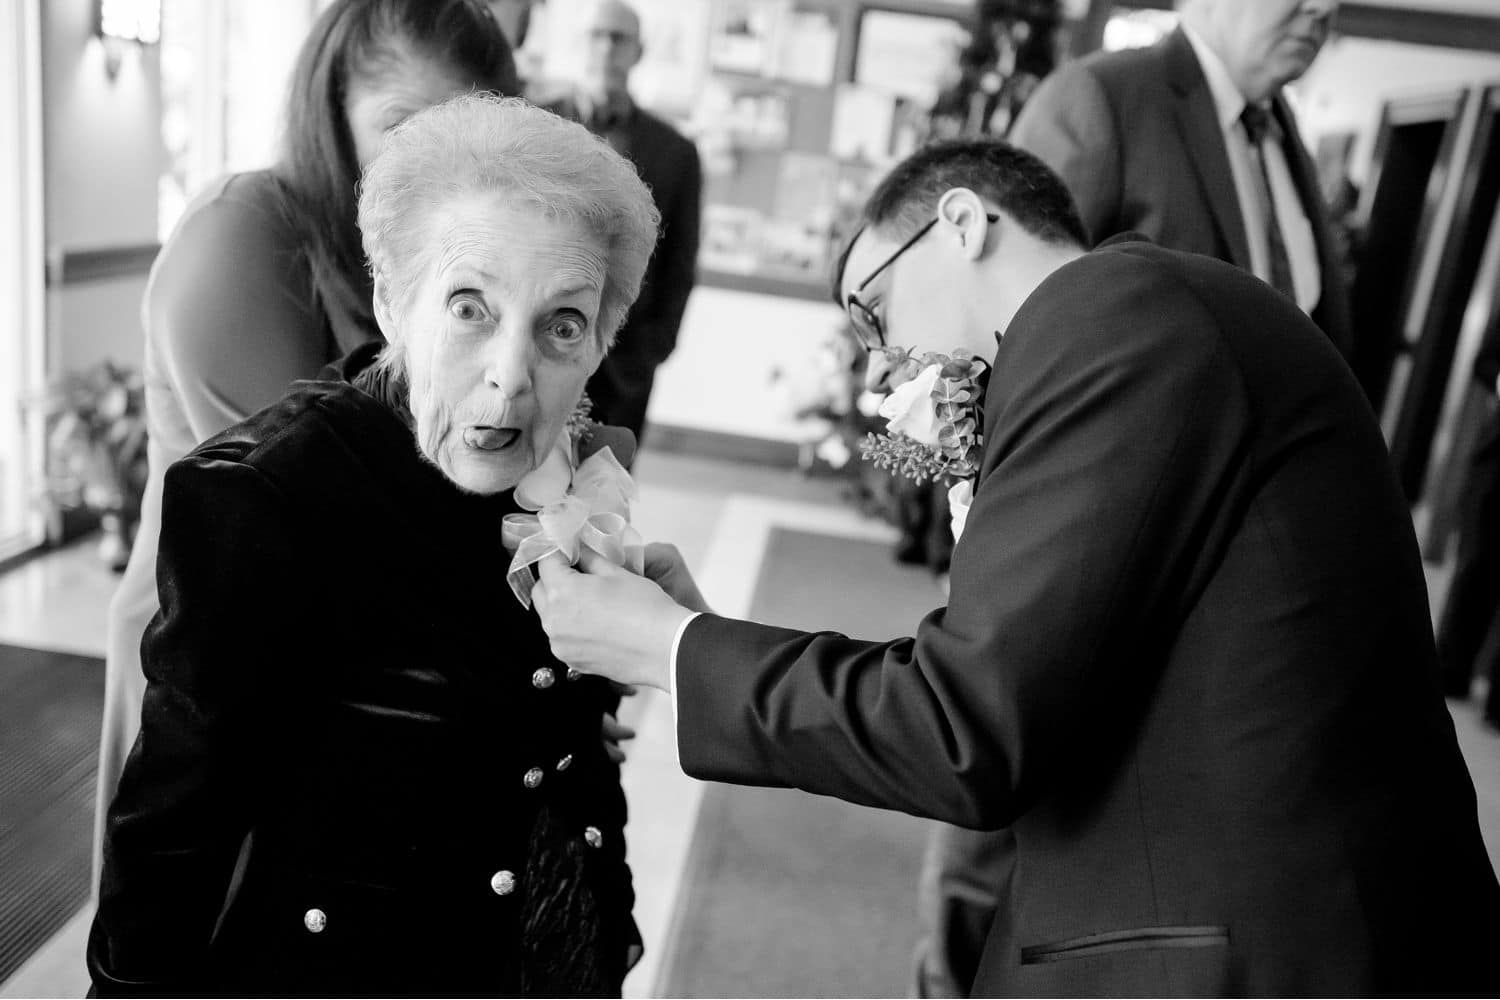 Make Money with Photography: Groom pins a boutonniere on his grandmother as she makes a silly face